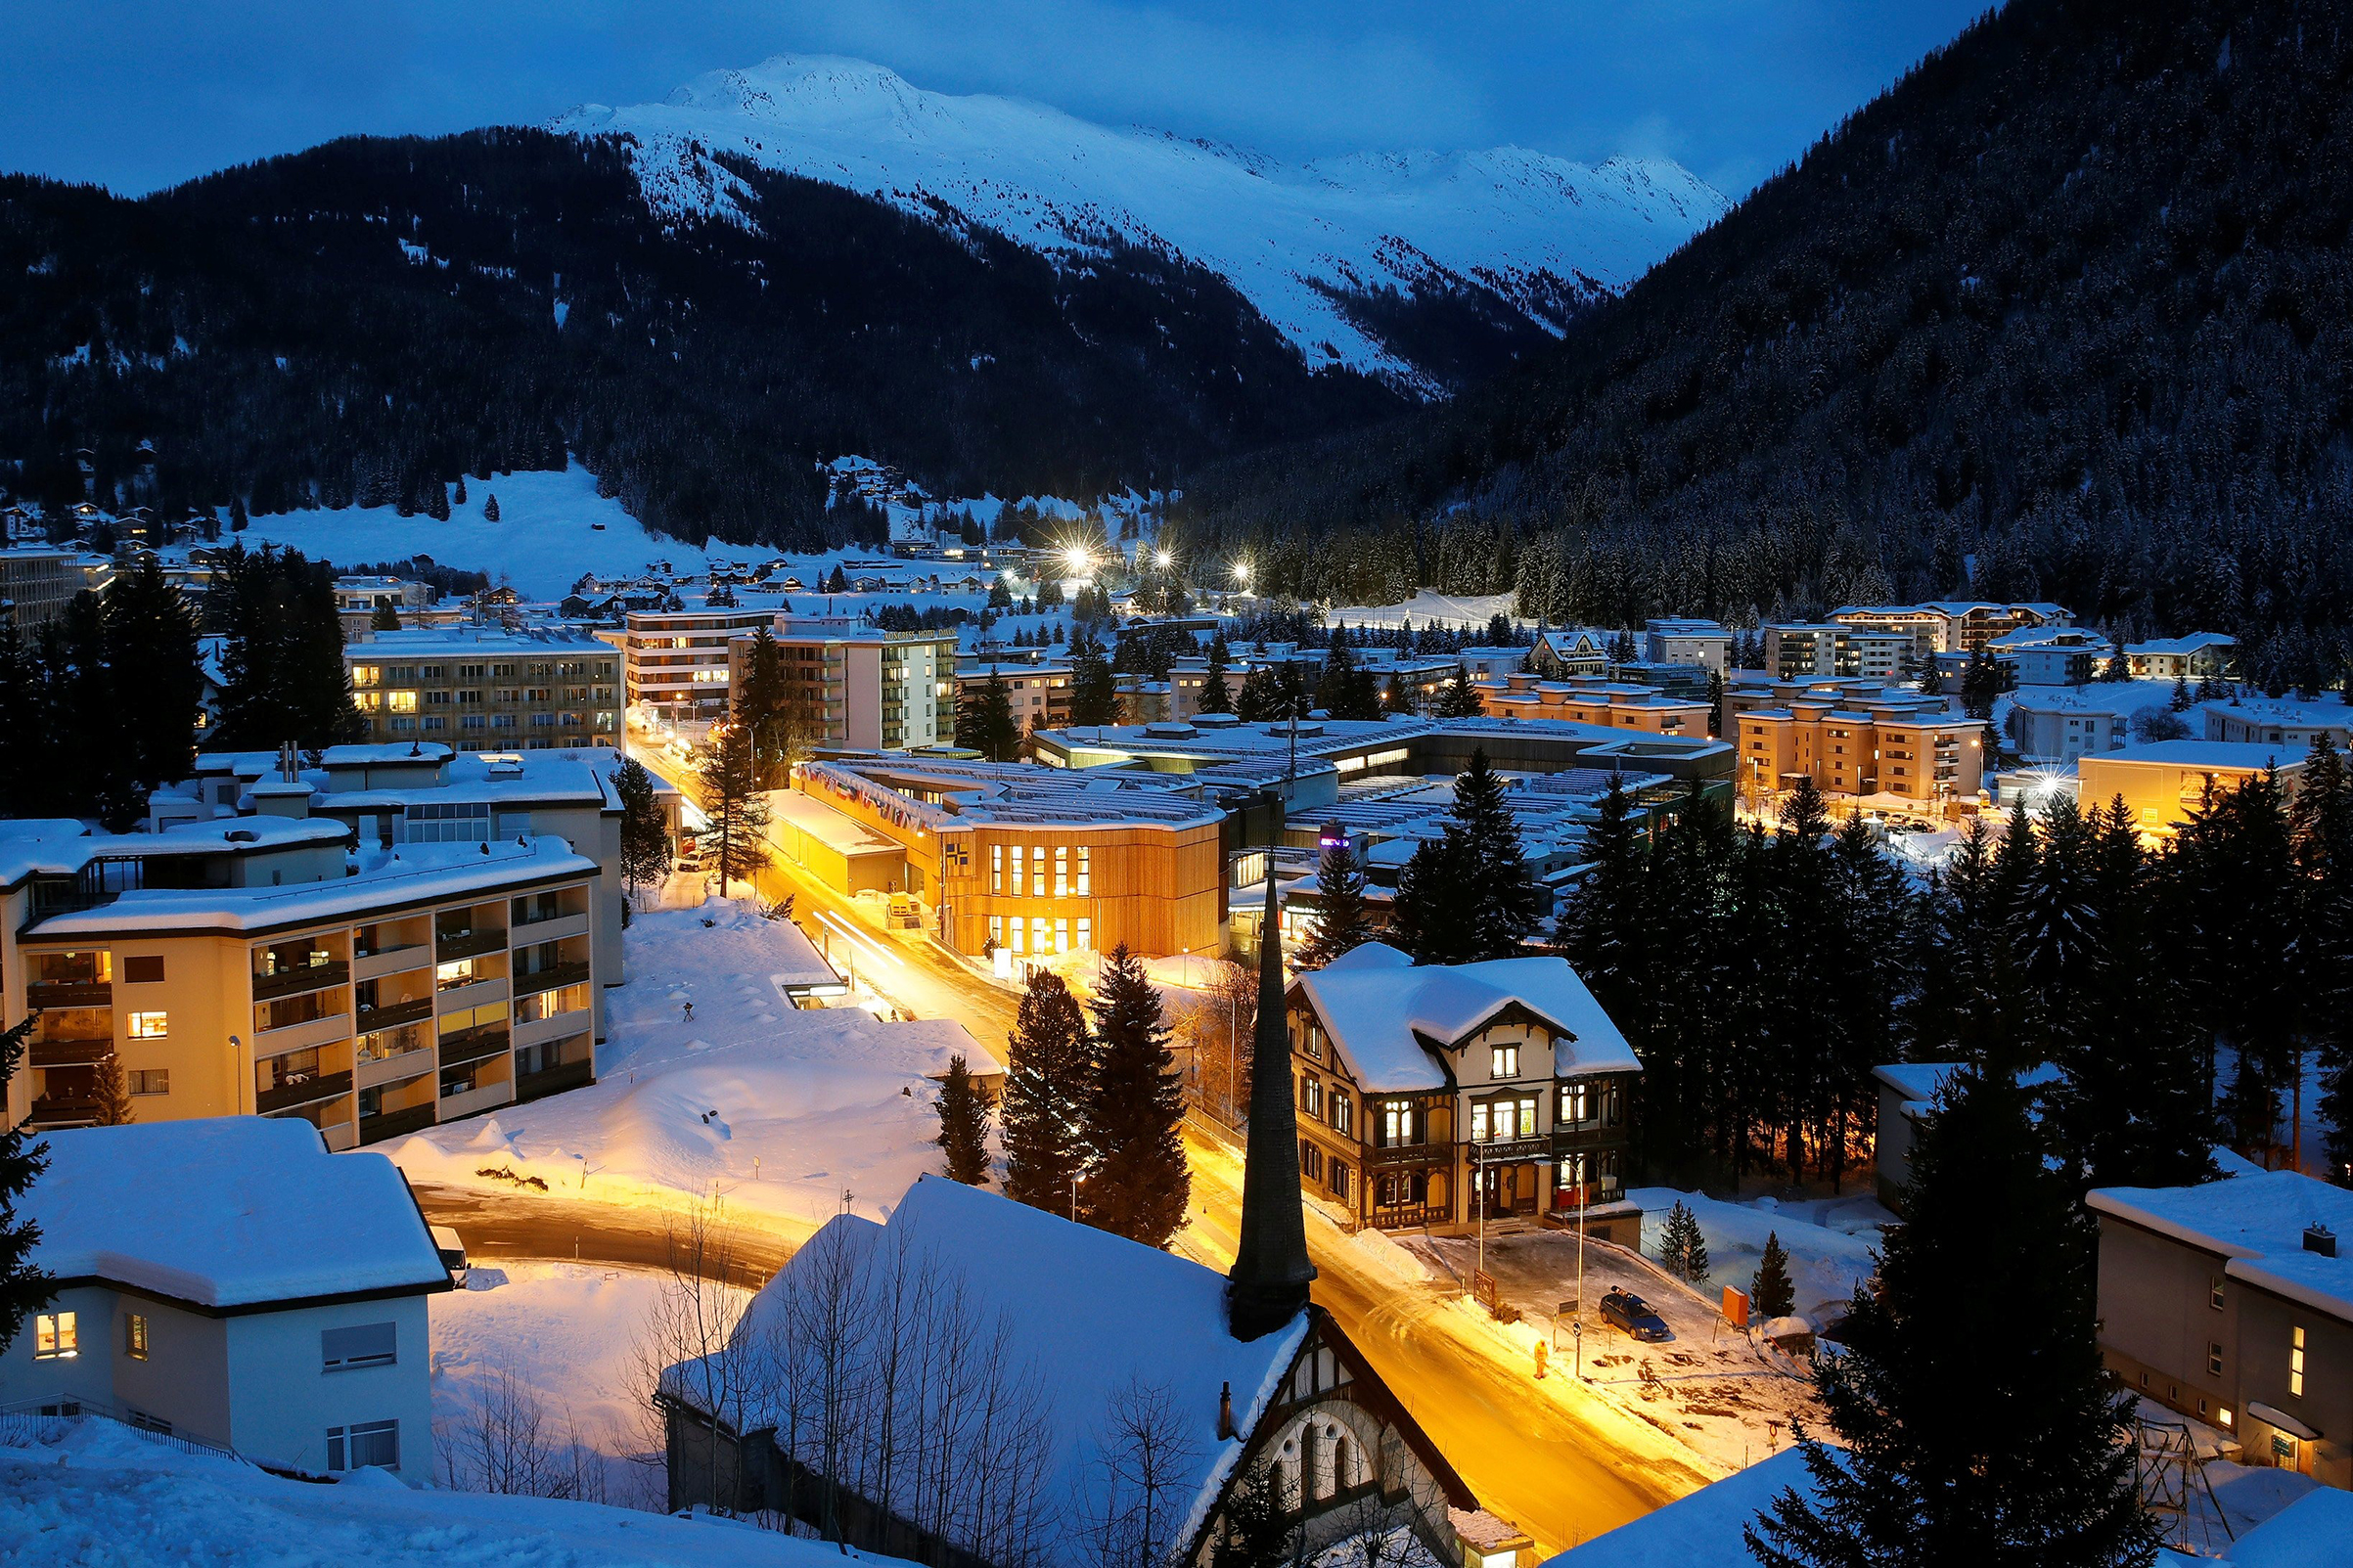 Nestled in the Swiss Alps, Davos (pop. 11,000) was best known as a ski resort until the World Economic Forum made it synonymous with the global elite